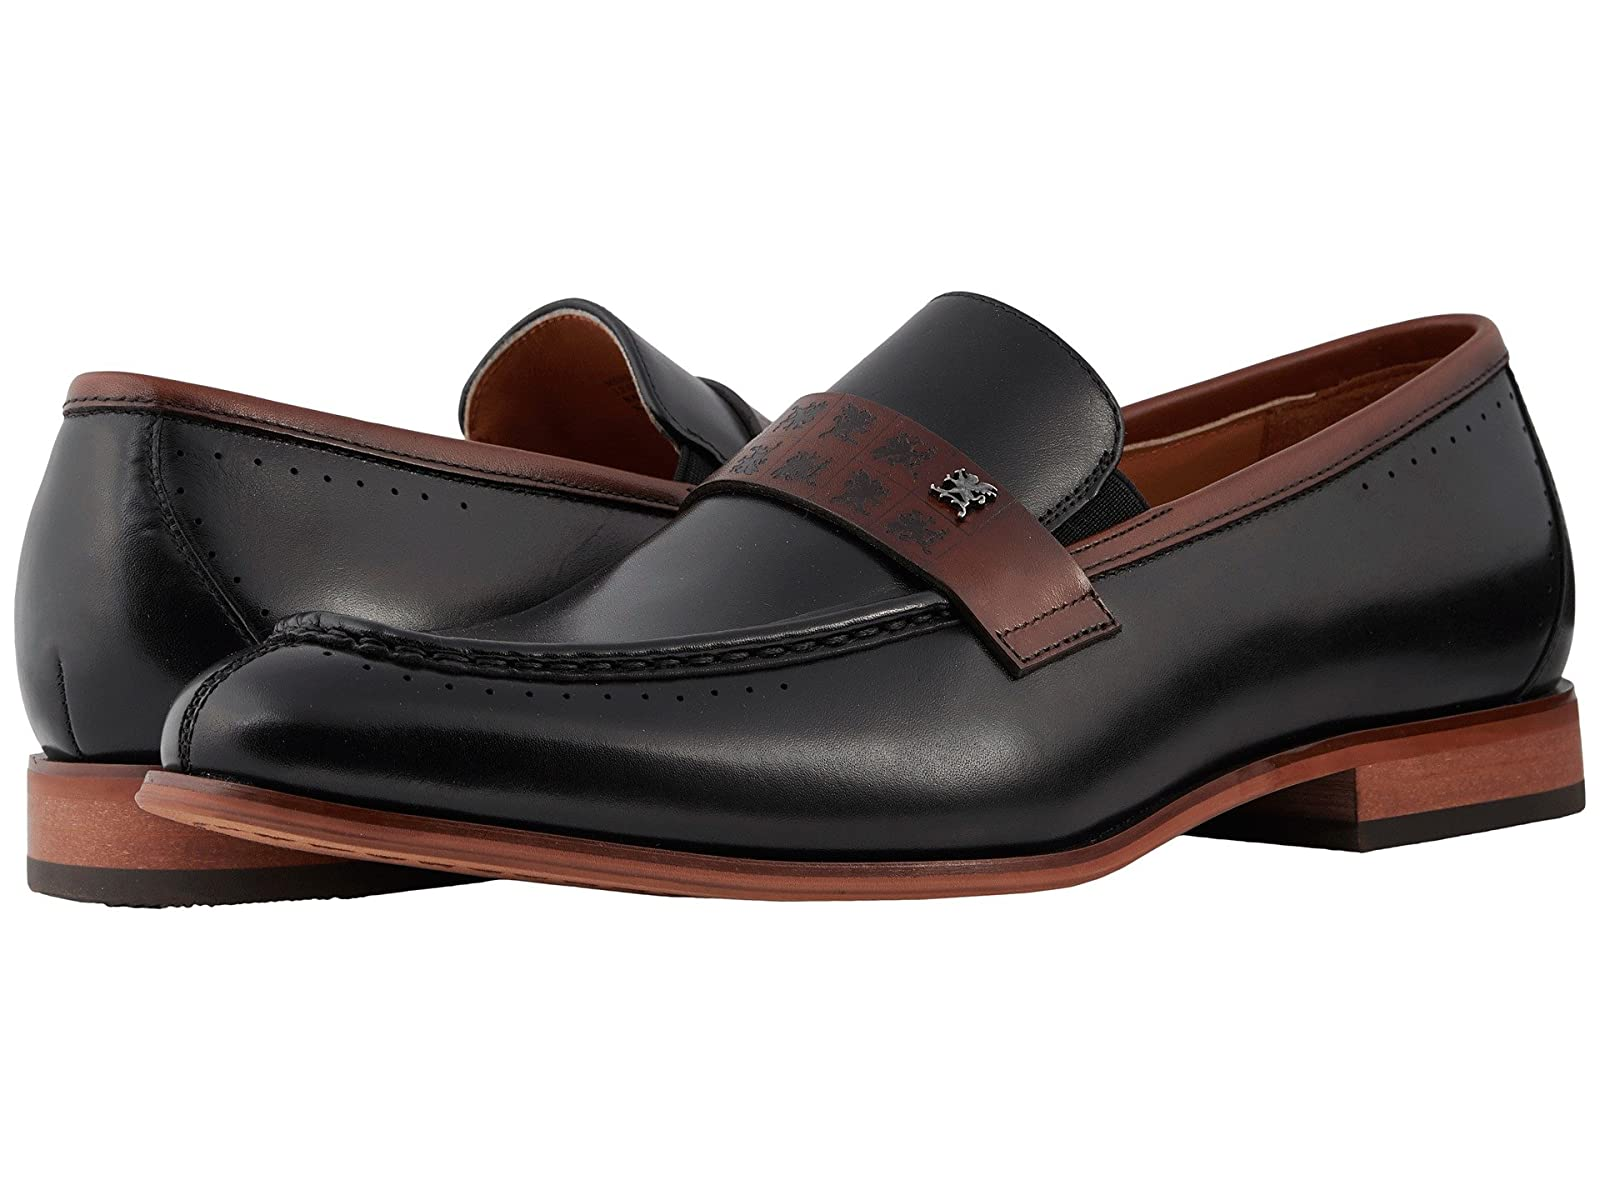 Stacy Adams SussexAtmospheric grades have affordable shoes